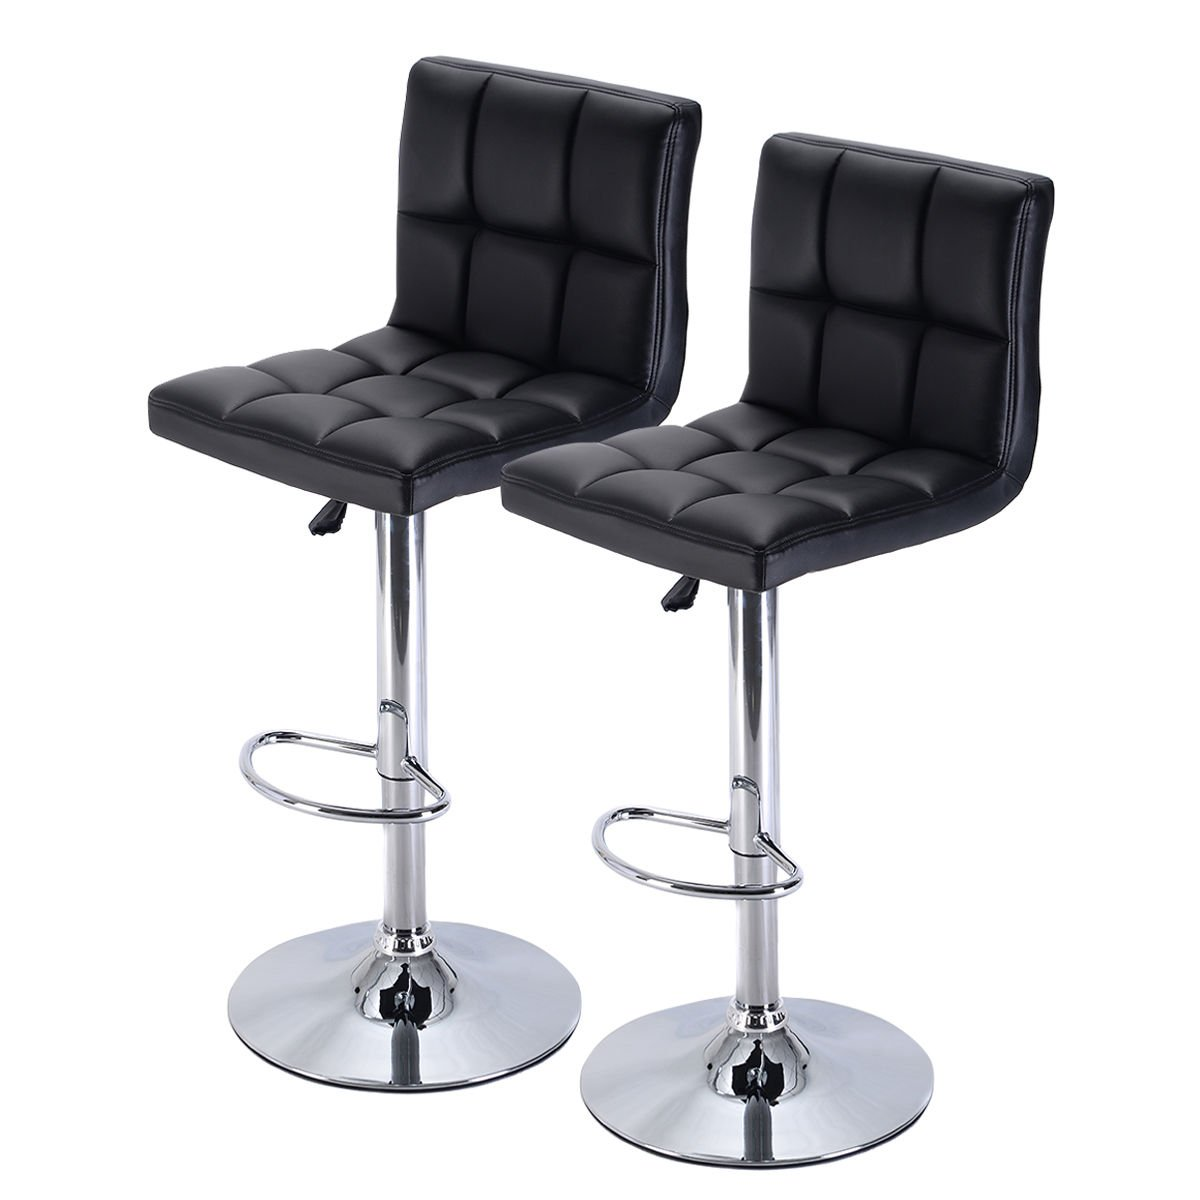 Costway Furniture Swivel PU Leather Barstools Chair Adjustable Hydraulic Counter Bar Stool, Set of 2 (Black)